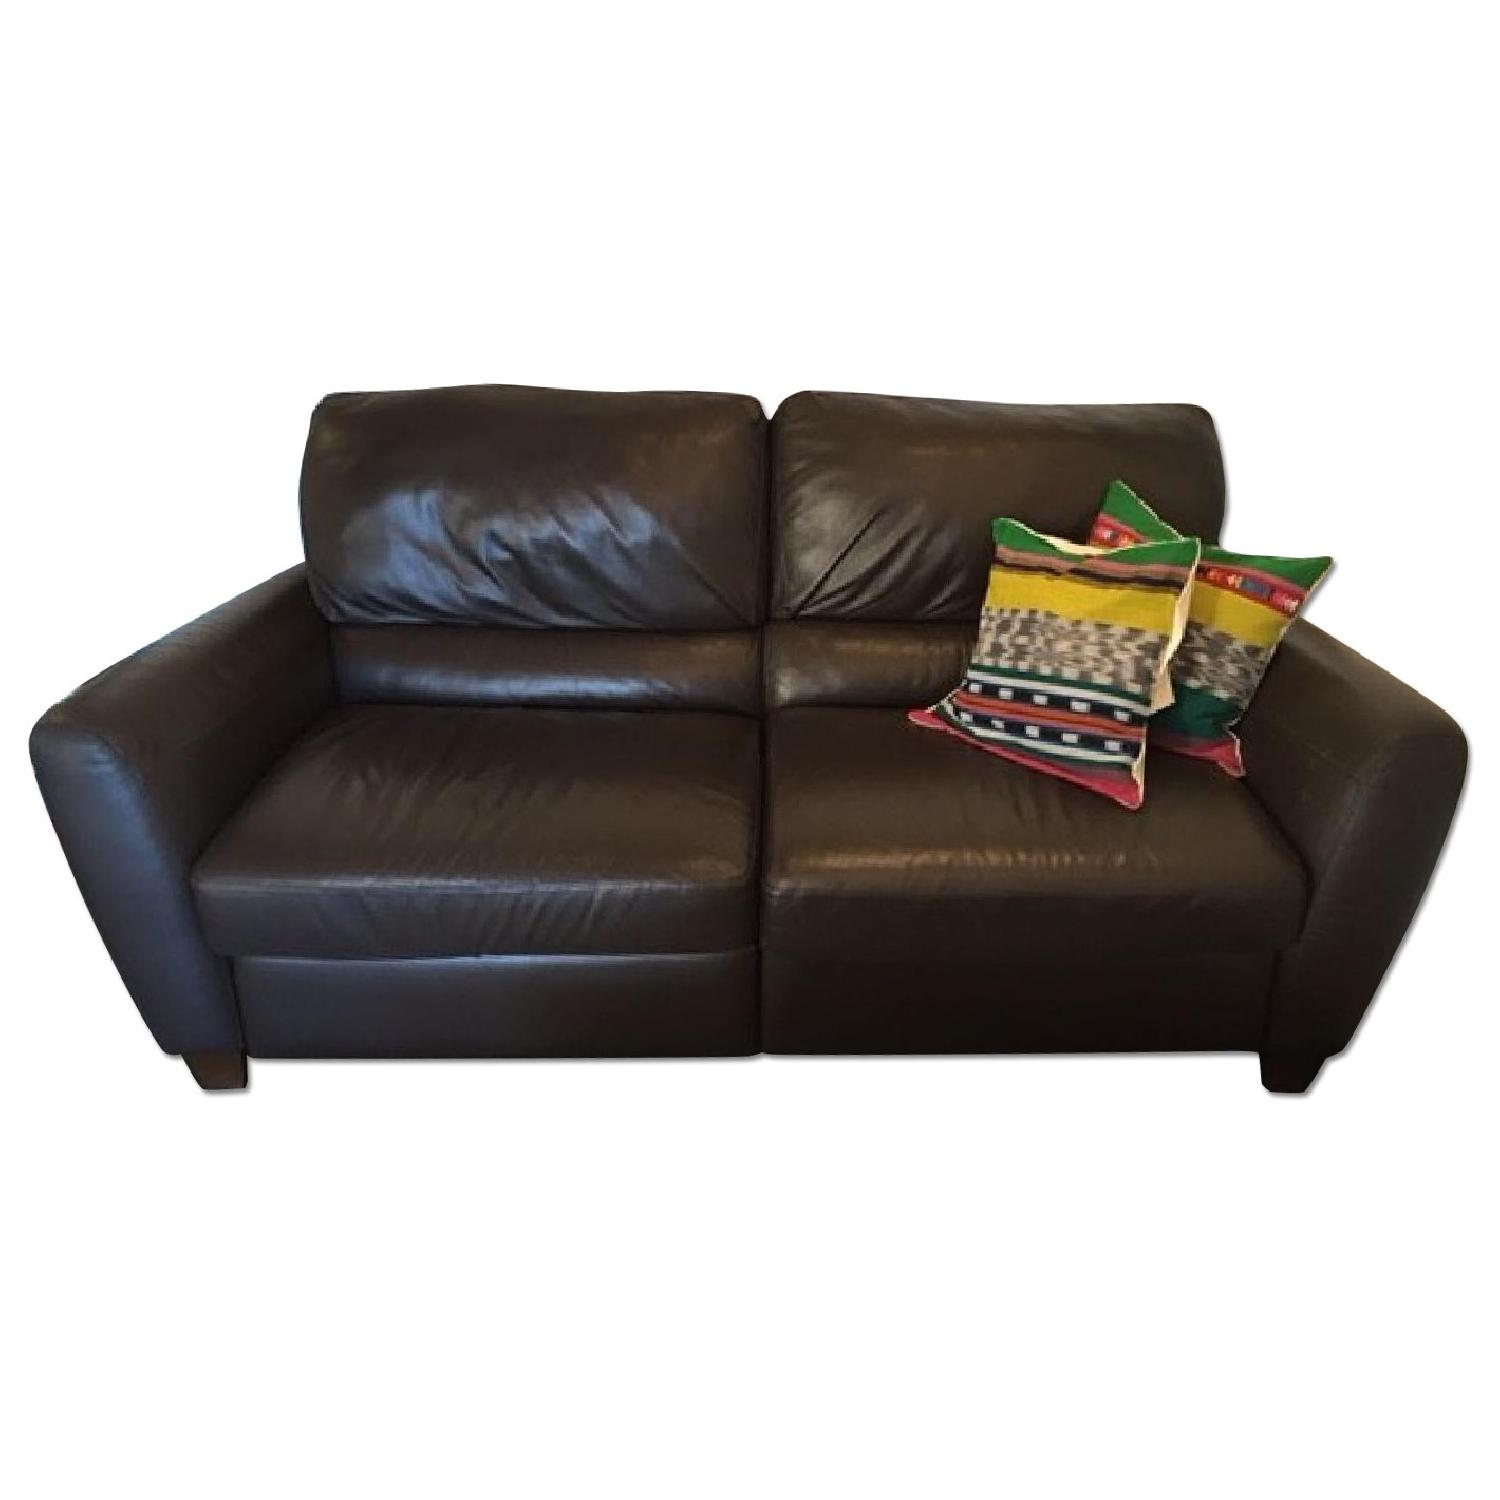 Macy's Brown Leather Reclining Sofa + Armchair - image-0